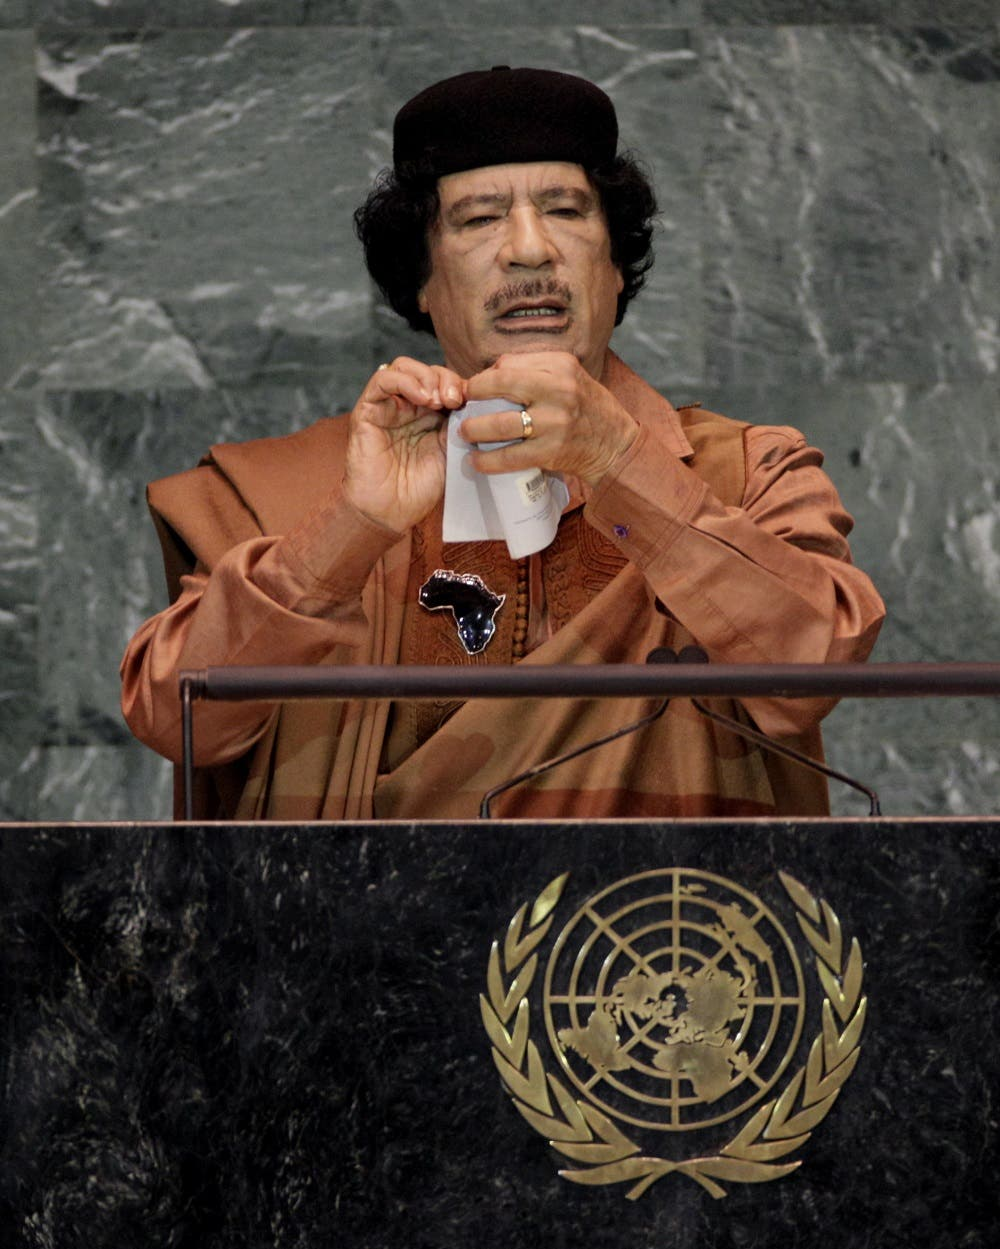 Libyan leader Moammar Gadhafi addresses the 64th session of the United Nations General Assembly, Wednesday, Sept. 23, 2009. (AP